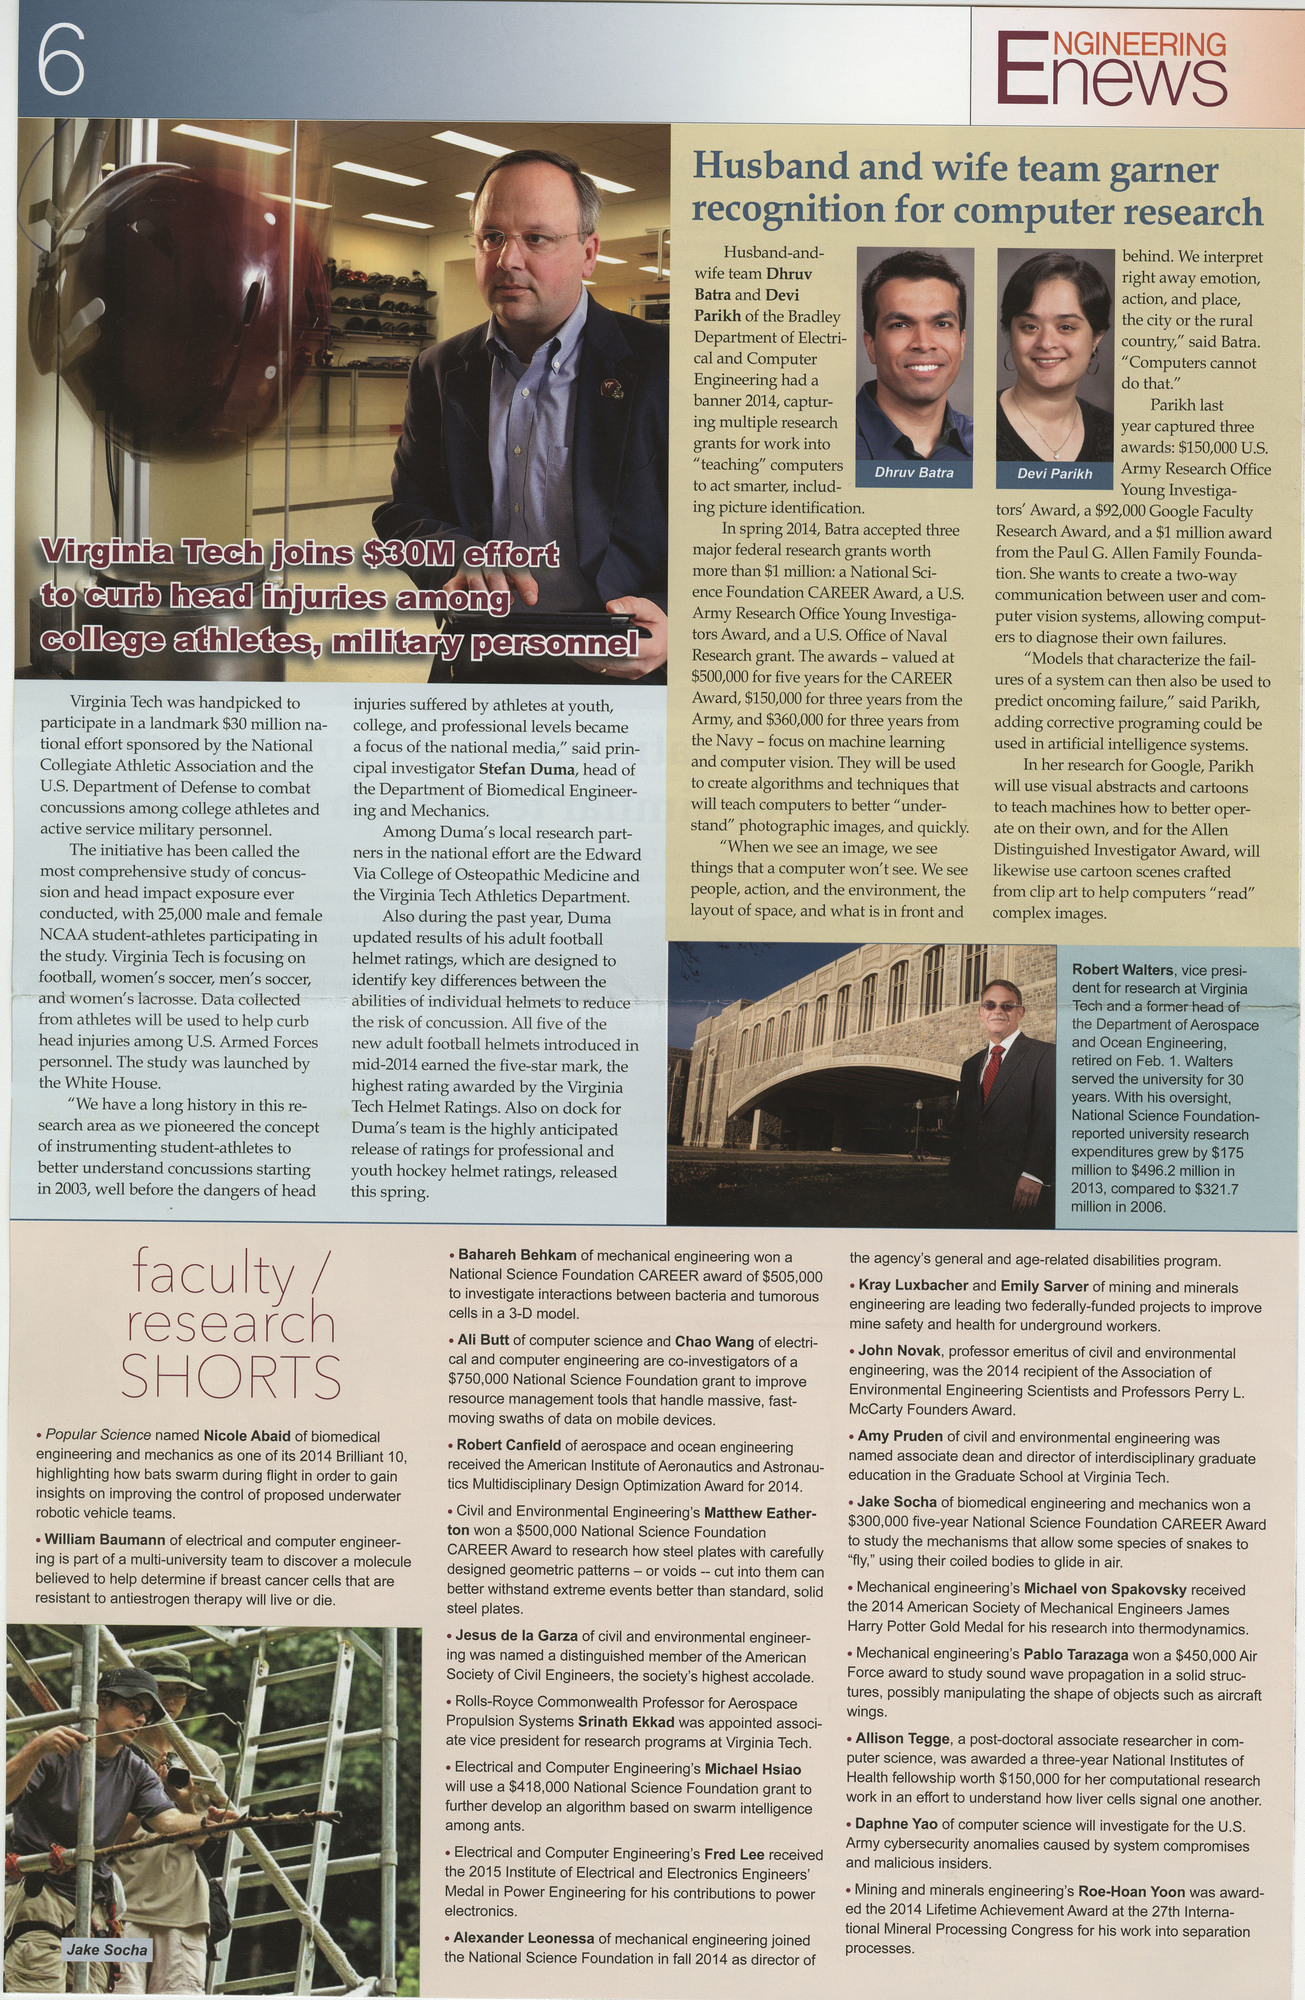 LD5655_A651_E55_2015_EngineeringNews_2015Spring-p6.jpg